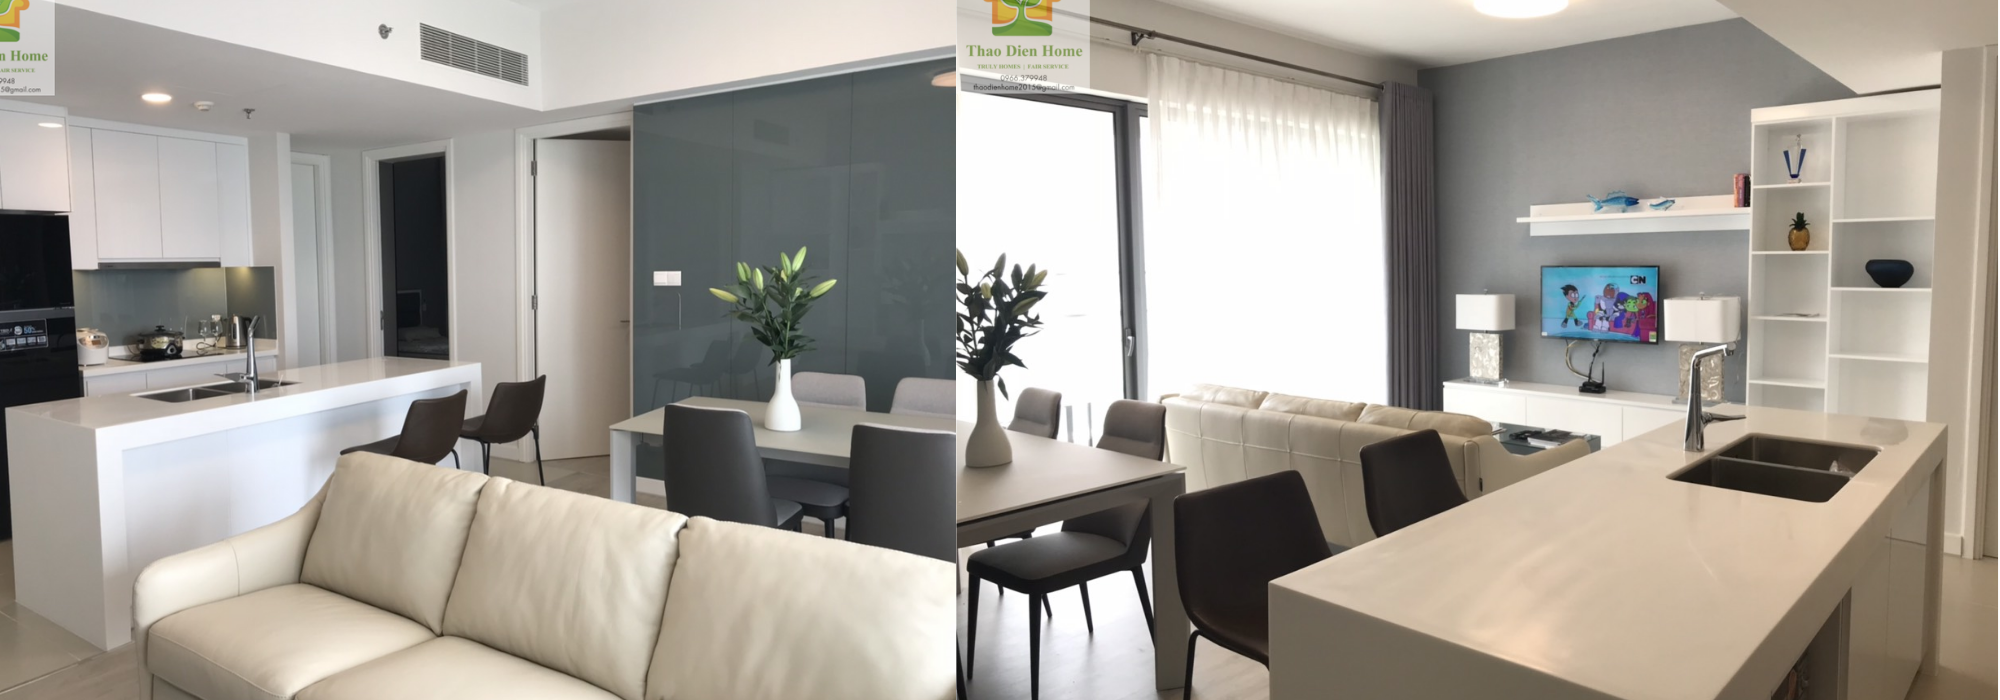 Gateway Thao Dien For Rent, 2 Bedrooms – Delicate and Convenient Apartment